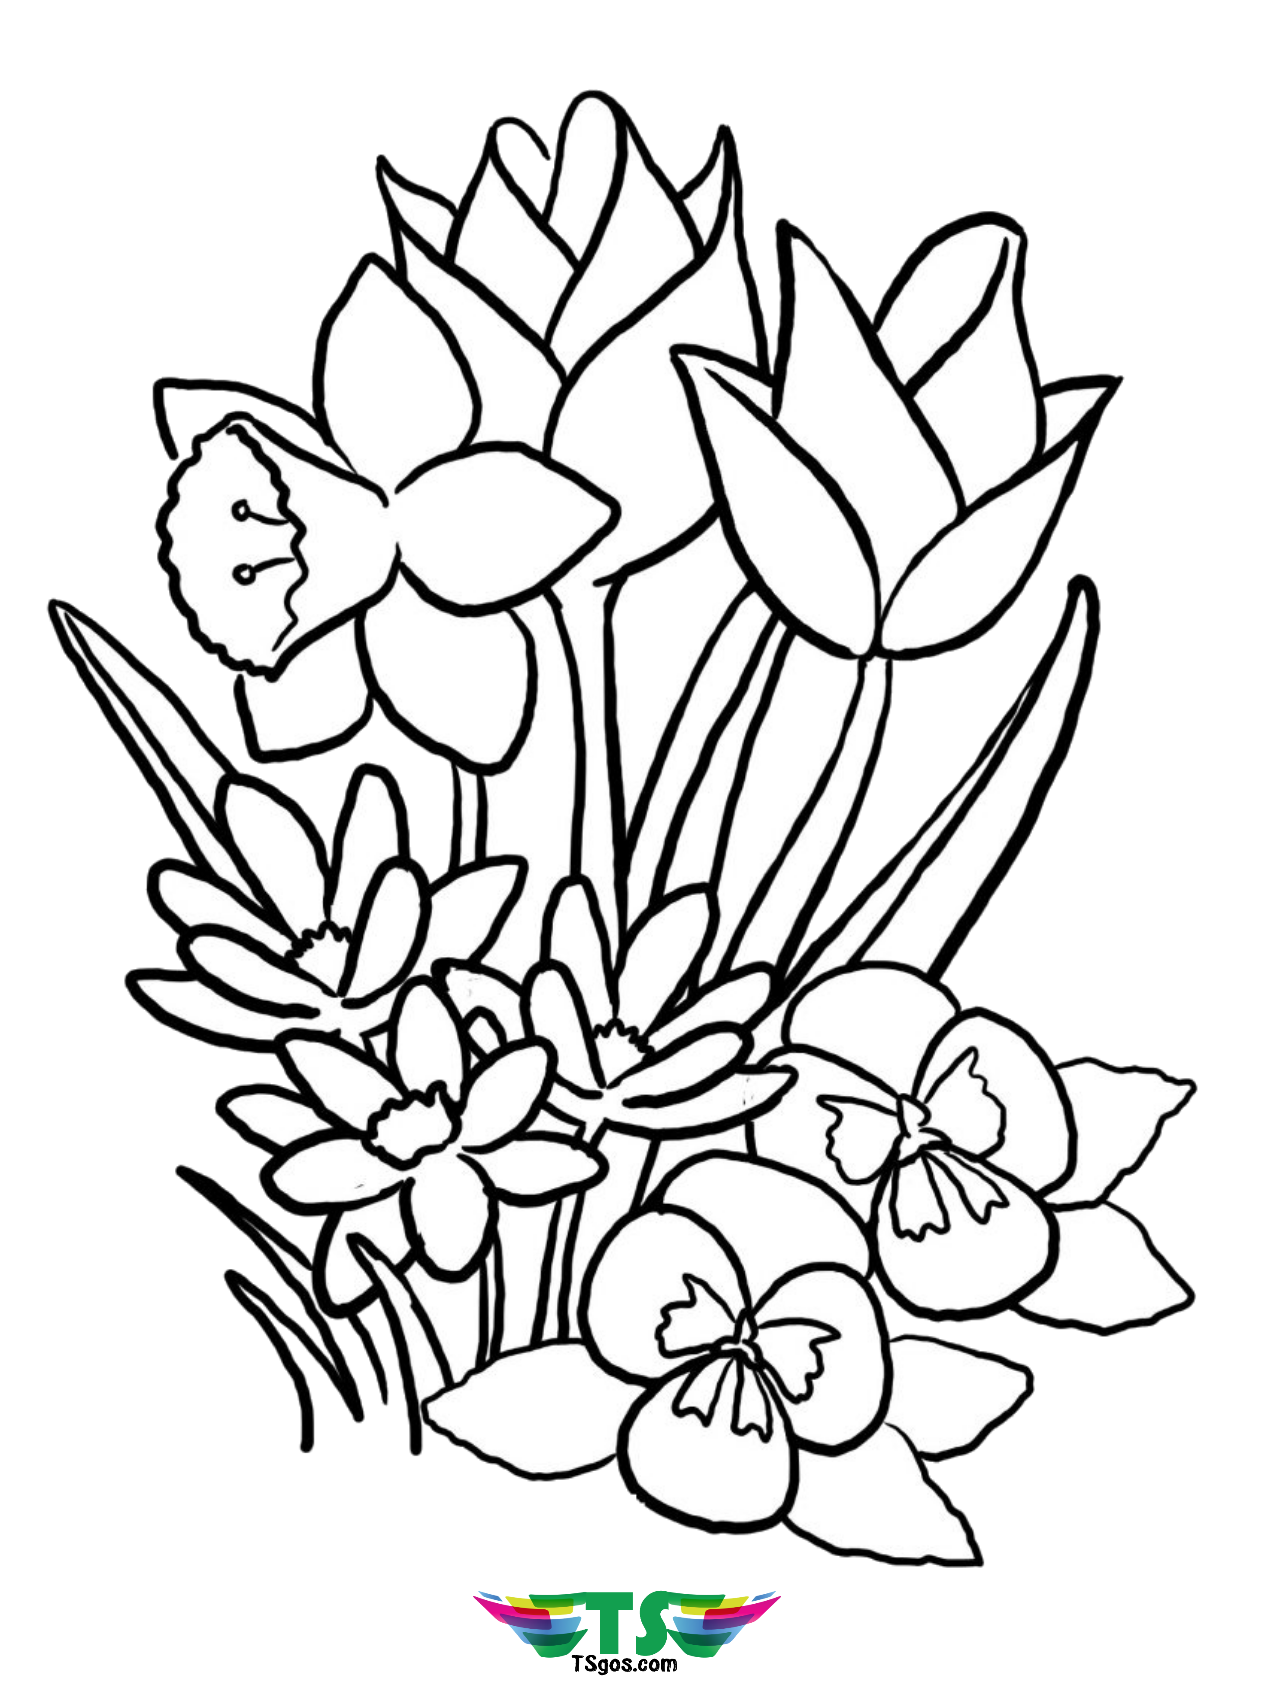 picture of flowers to print flowers collage flower coloring sheets flower flowers print of picture to